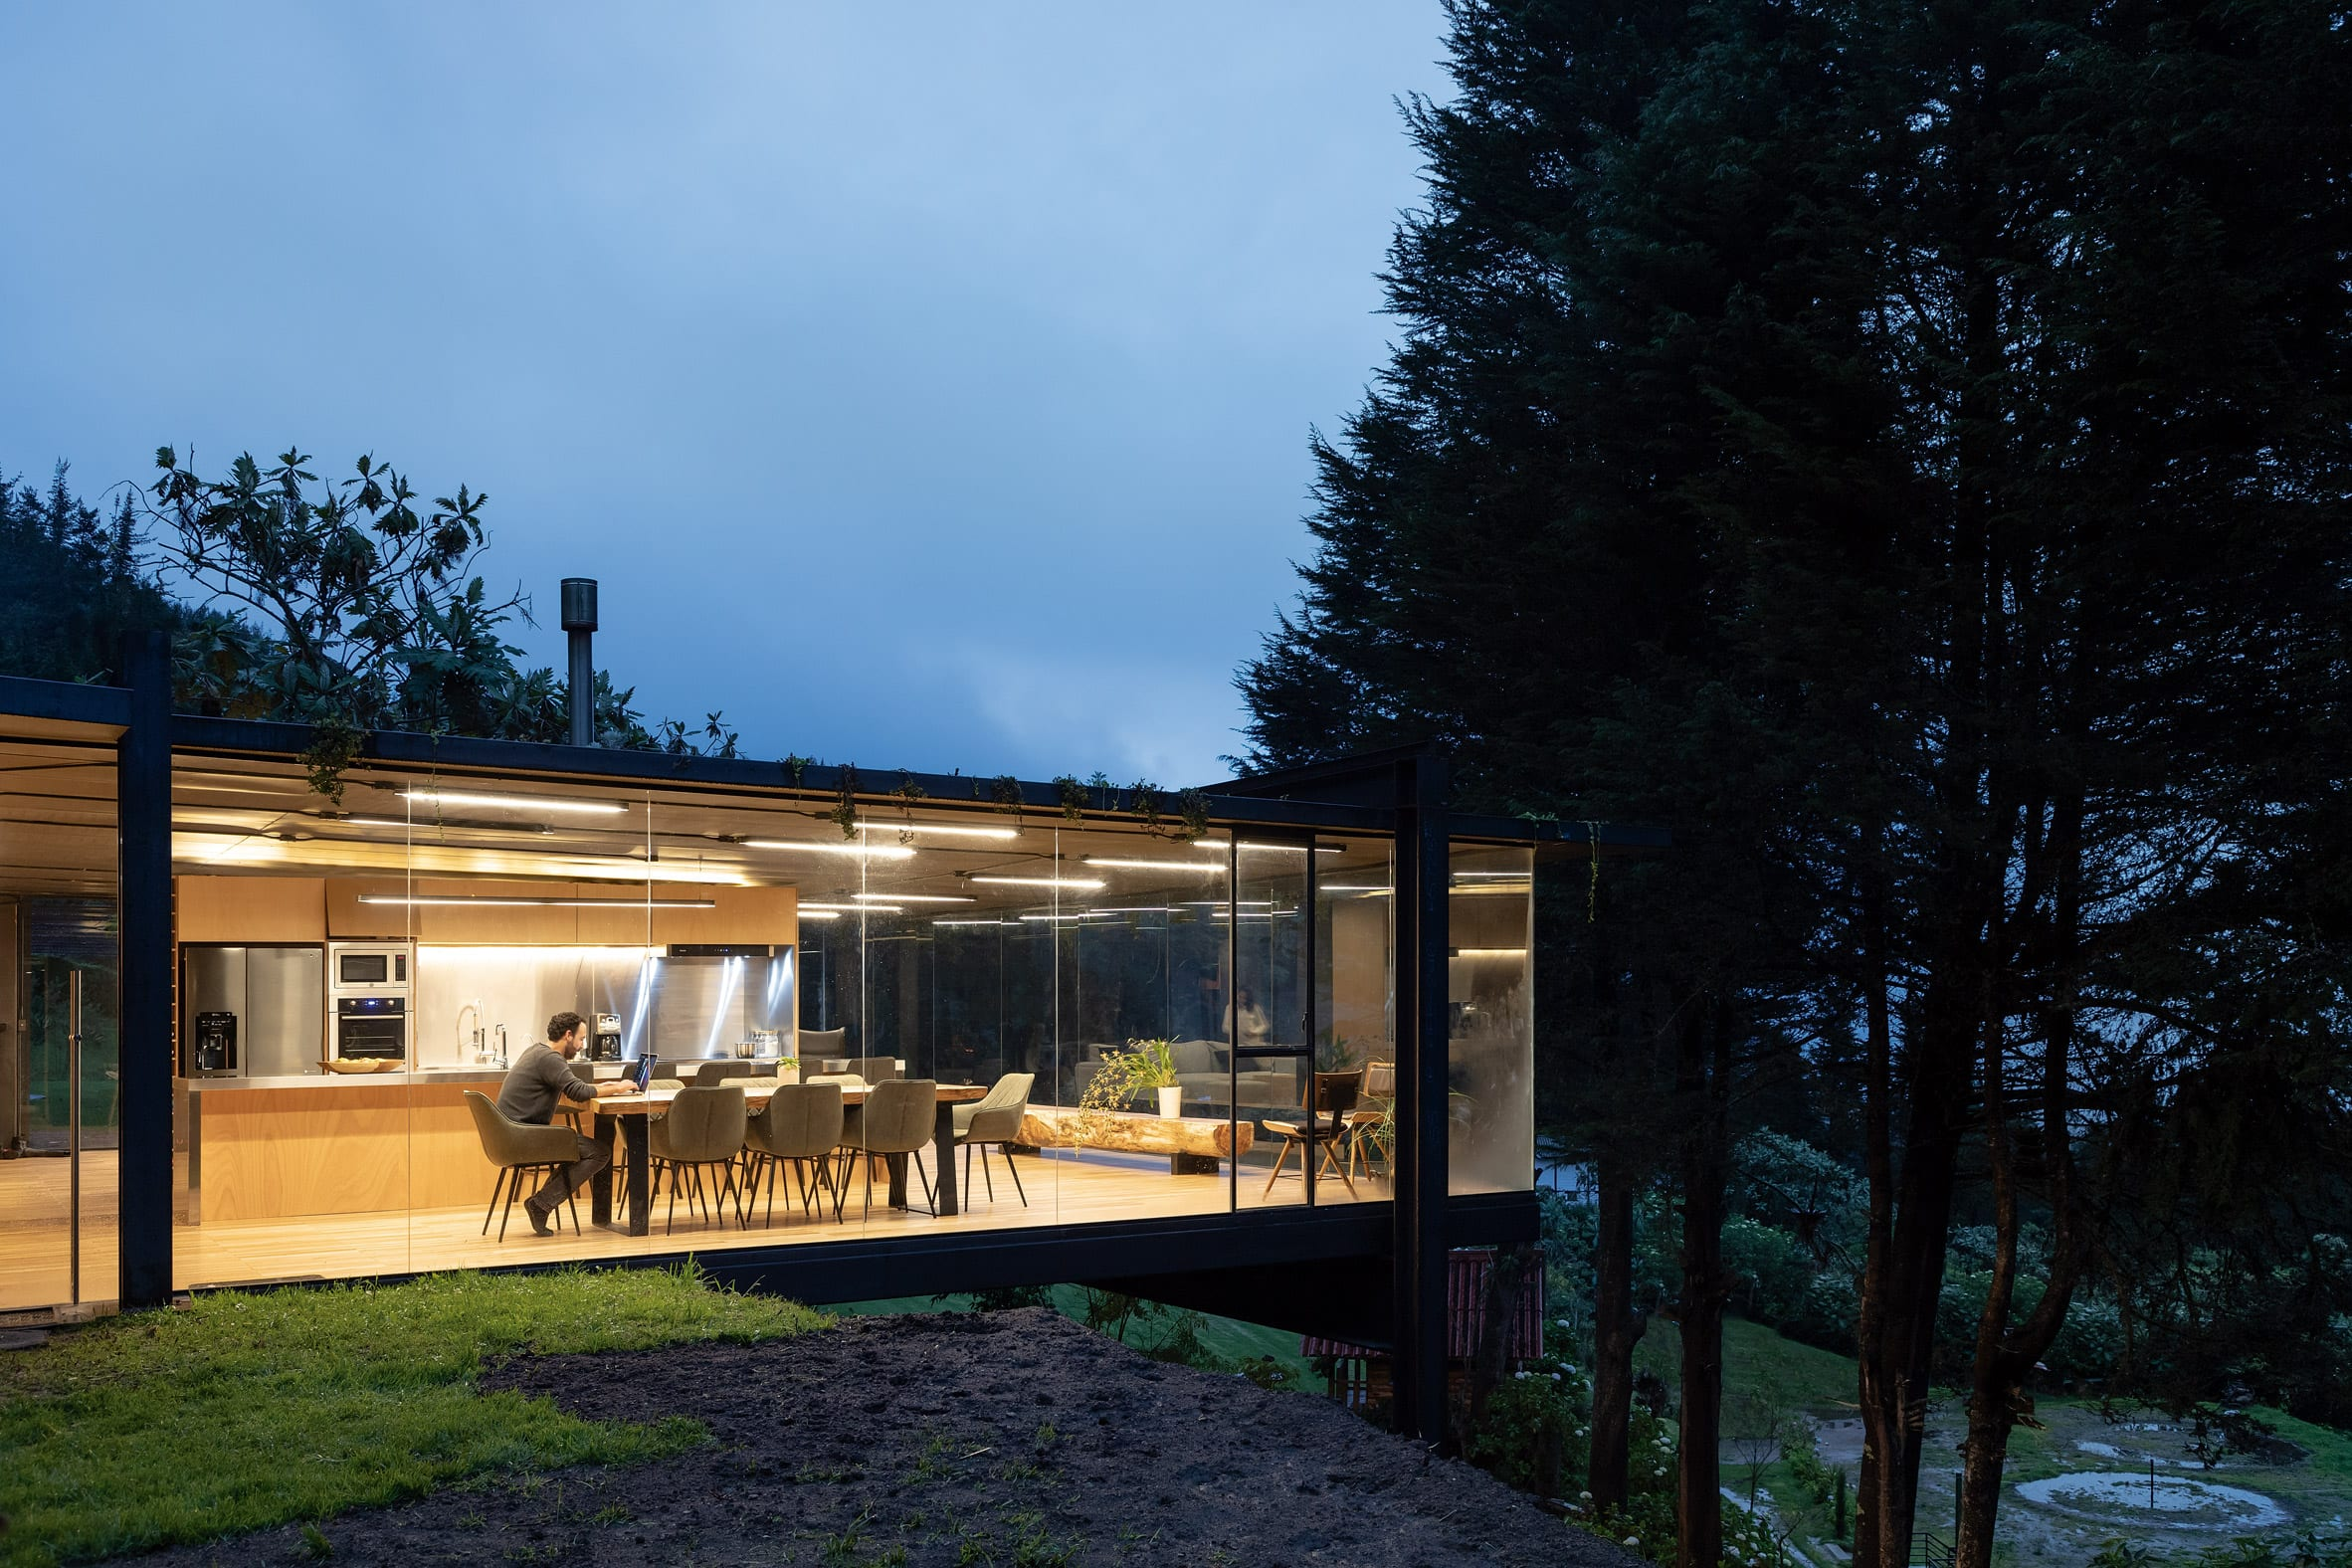 Rama Estudio has enlarged a small house in an Ecuadorian forest by adding a glass-and-metal box that extends over a hillside.